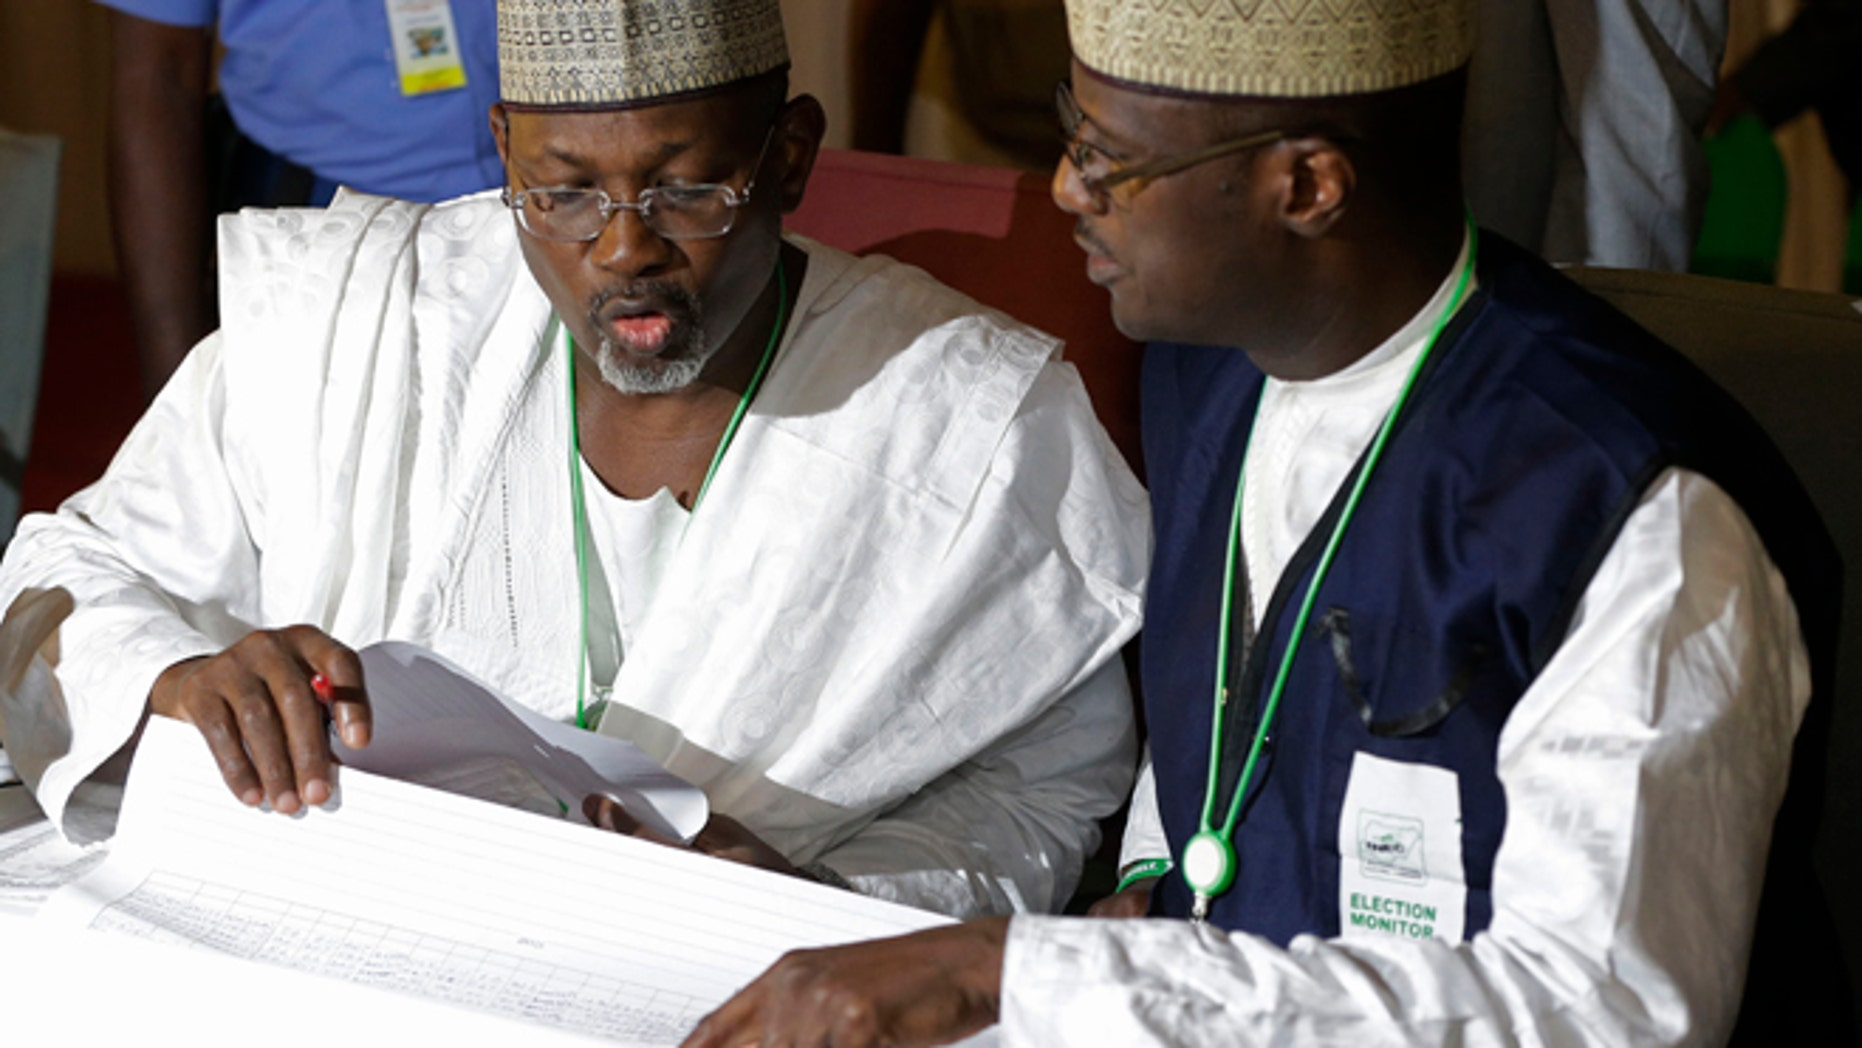 March 30, 2015: Independent National Electoral Commission chairman, Attahiru Jega, left, views election results at the coalition center in Abuja, Nigeria, Monday.